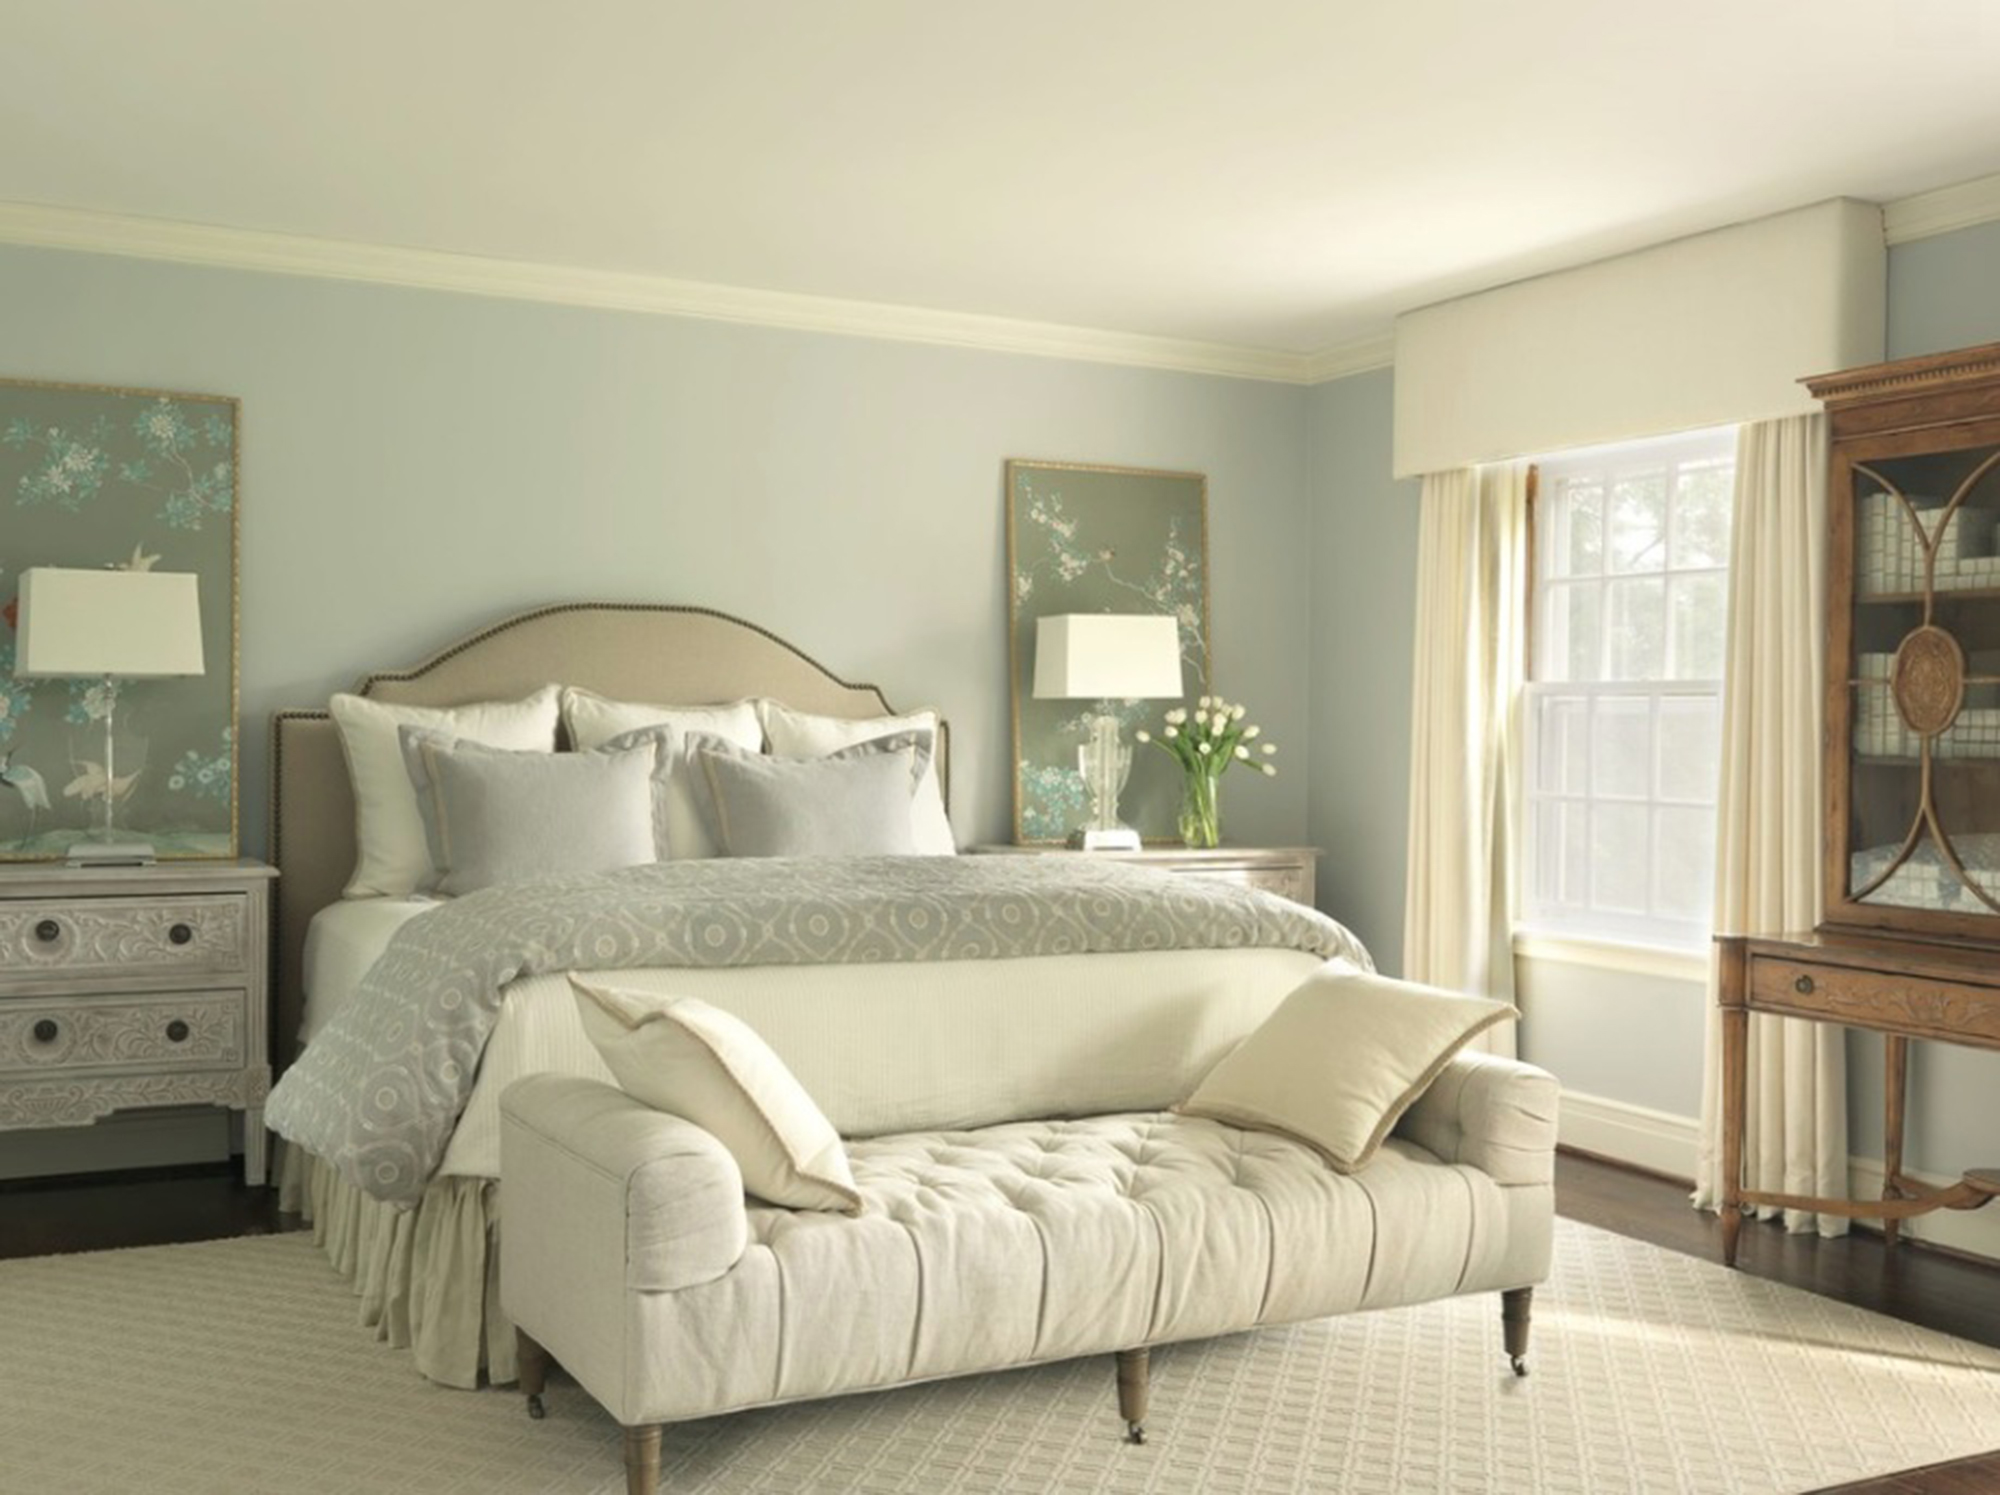 Sofa Bed Guest Room Ideas Guest Room Ideas That Ll Have You Gushing Kathy Kuo Blog Kathy